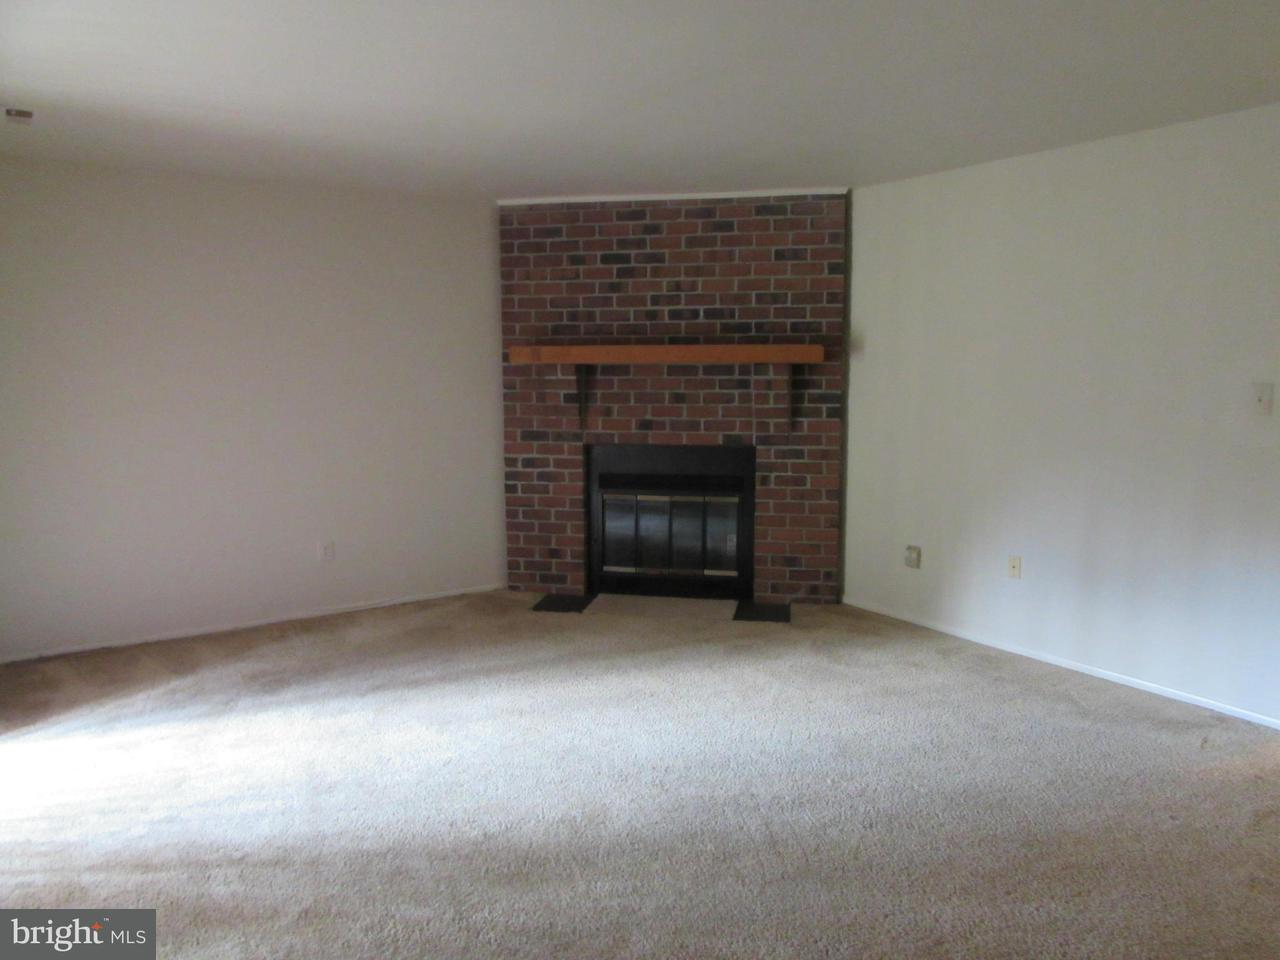 Other Residential for Rent at 26 Cross Falls Cir Sparks Glencoe, Maryland 21152 United States